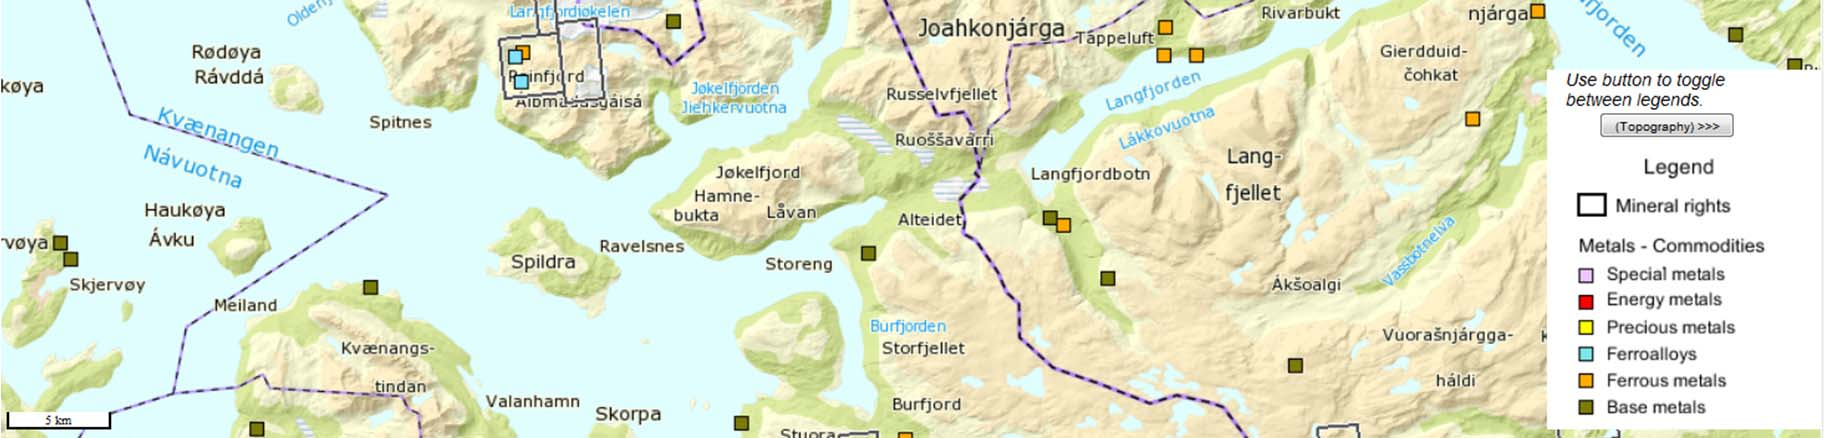 Claims NM Reinfjord Claims 5 km Leterettigheter areal: